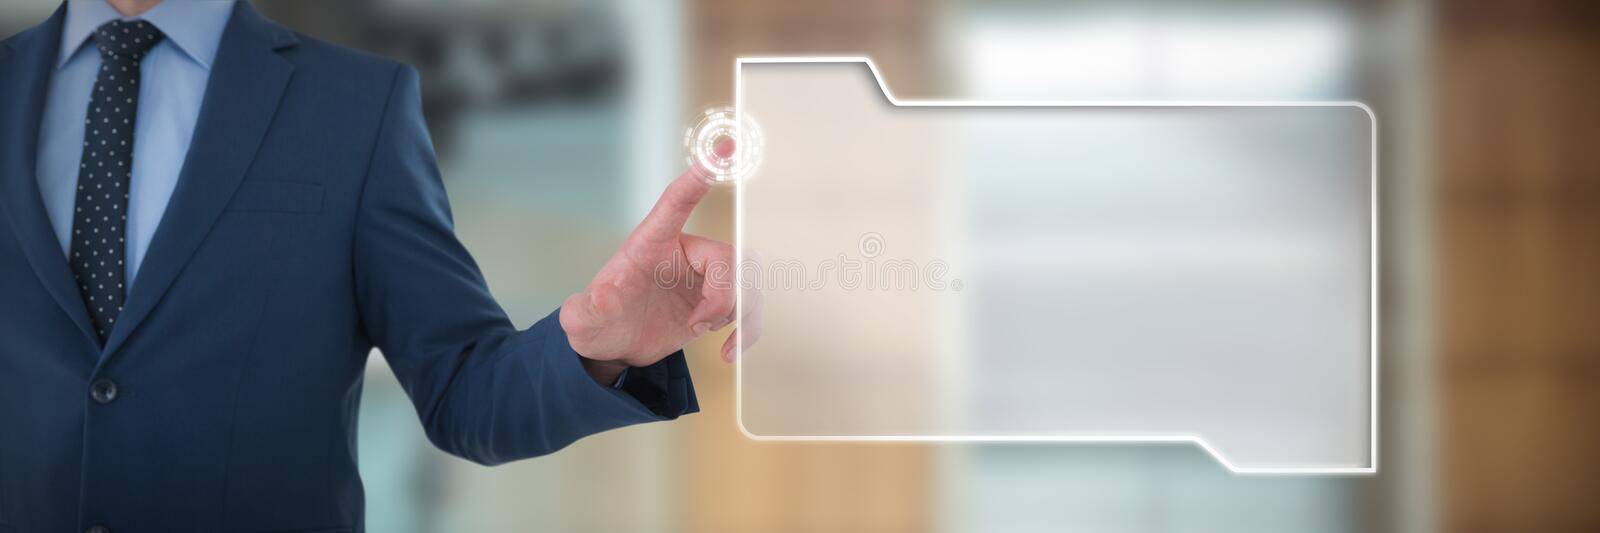 Mid section of businessman selecting on imaginary screen against lift in office building royalty free stock photography